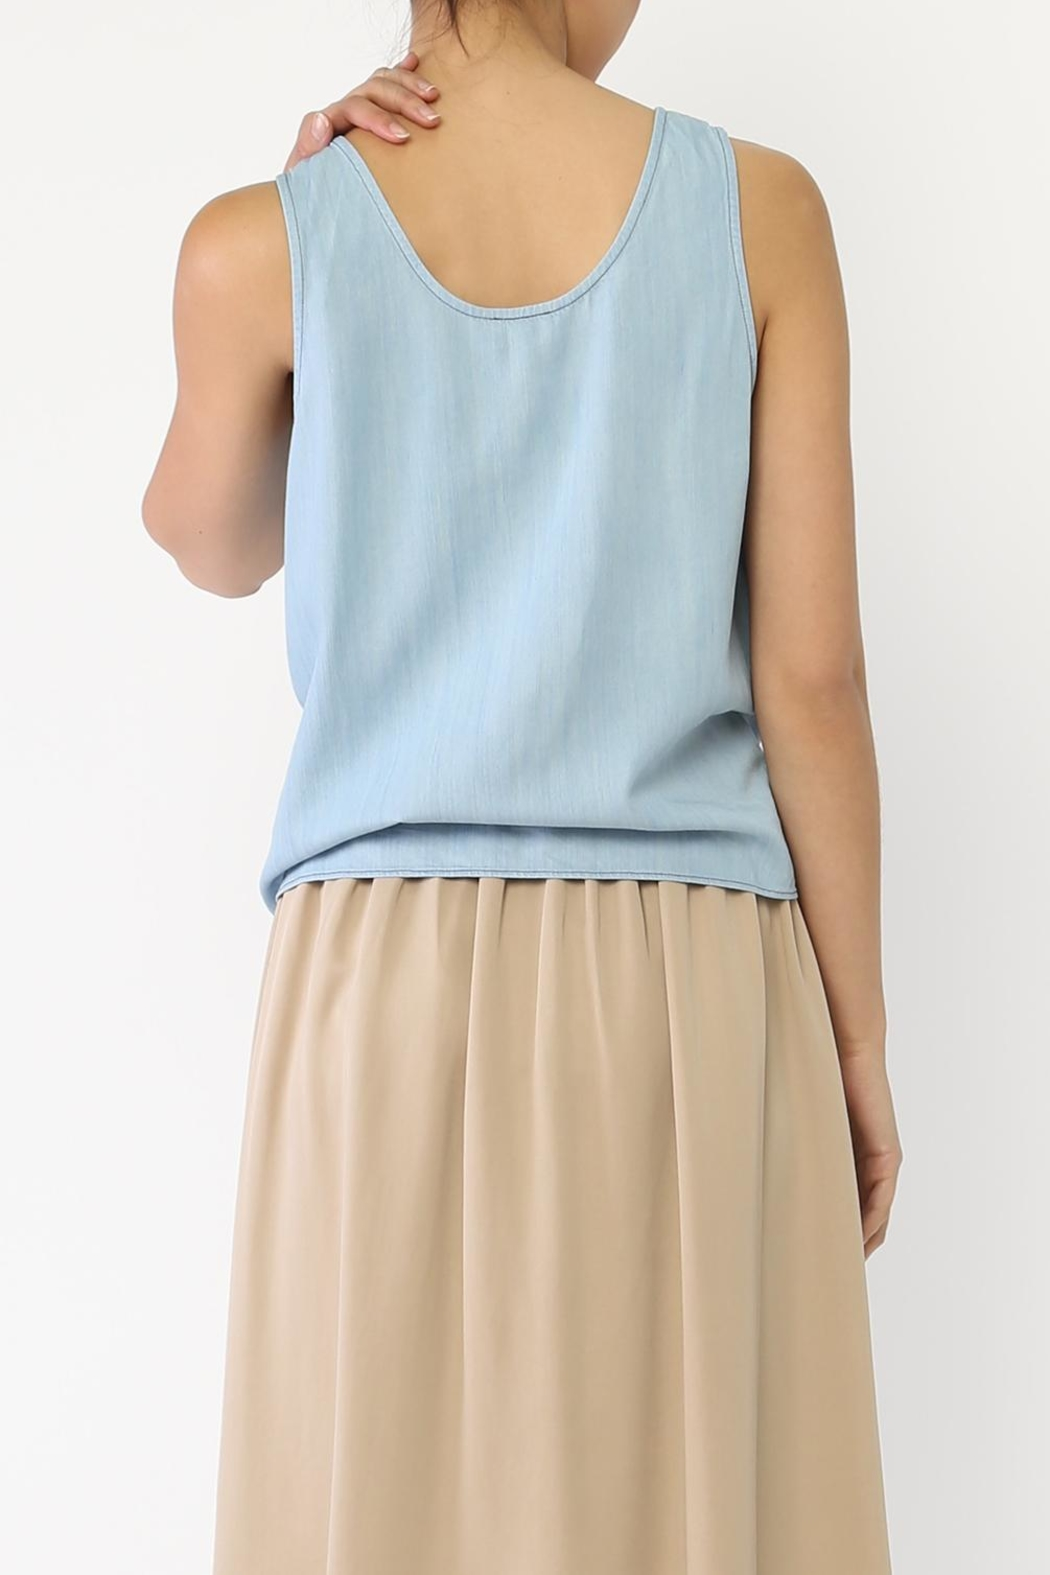 Movint Denim Tie Tank Top - Side Cropped Image